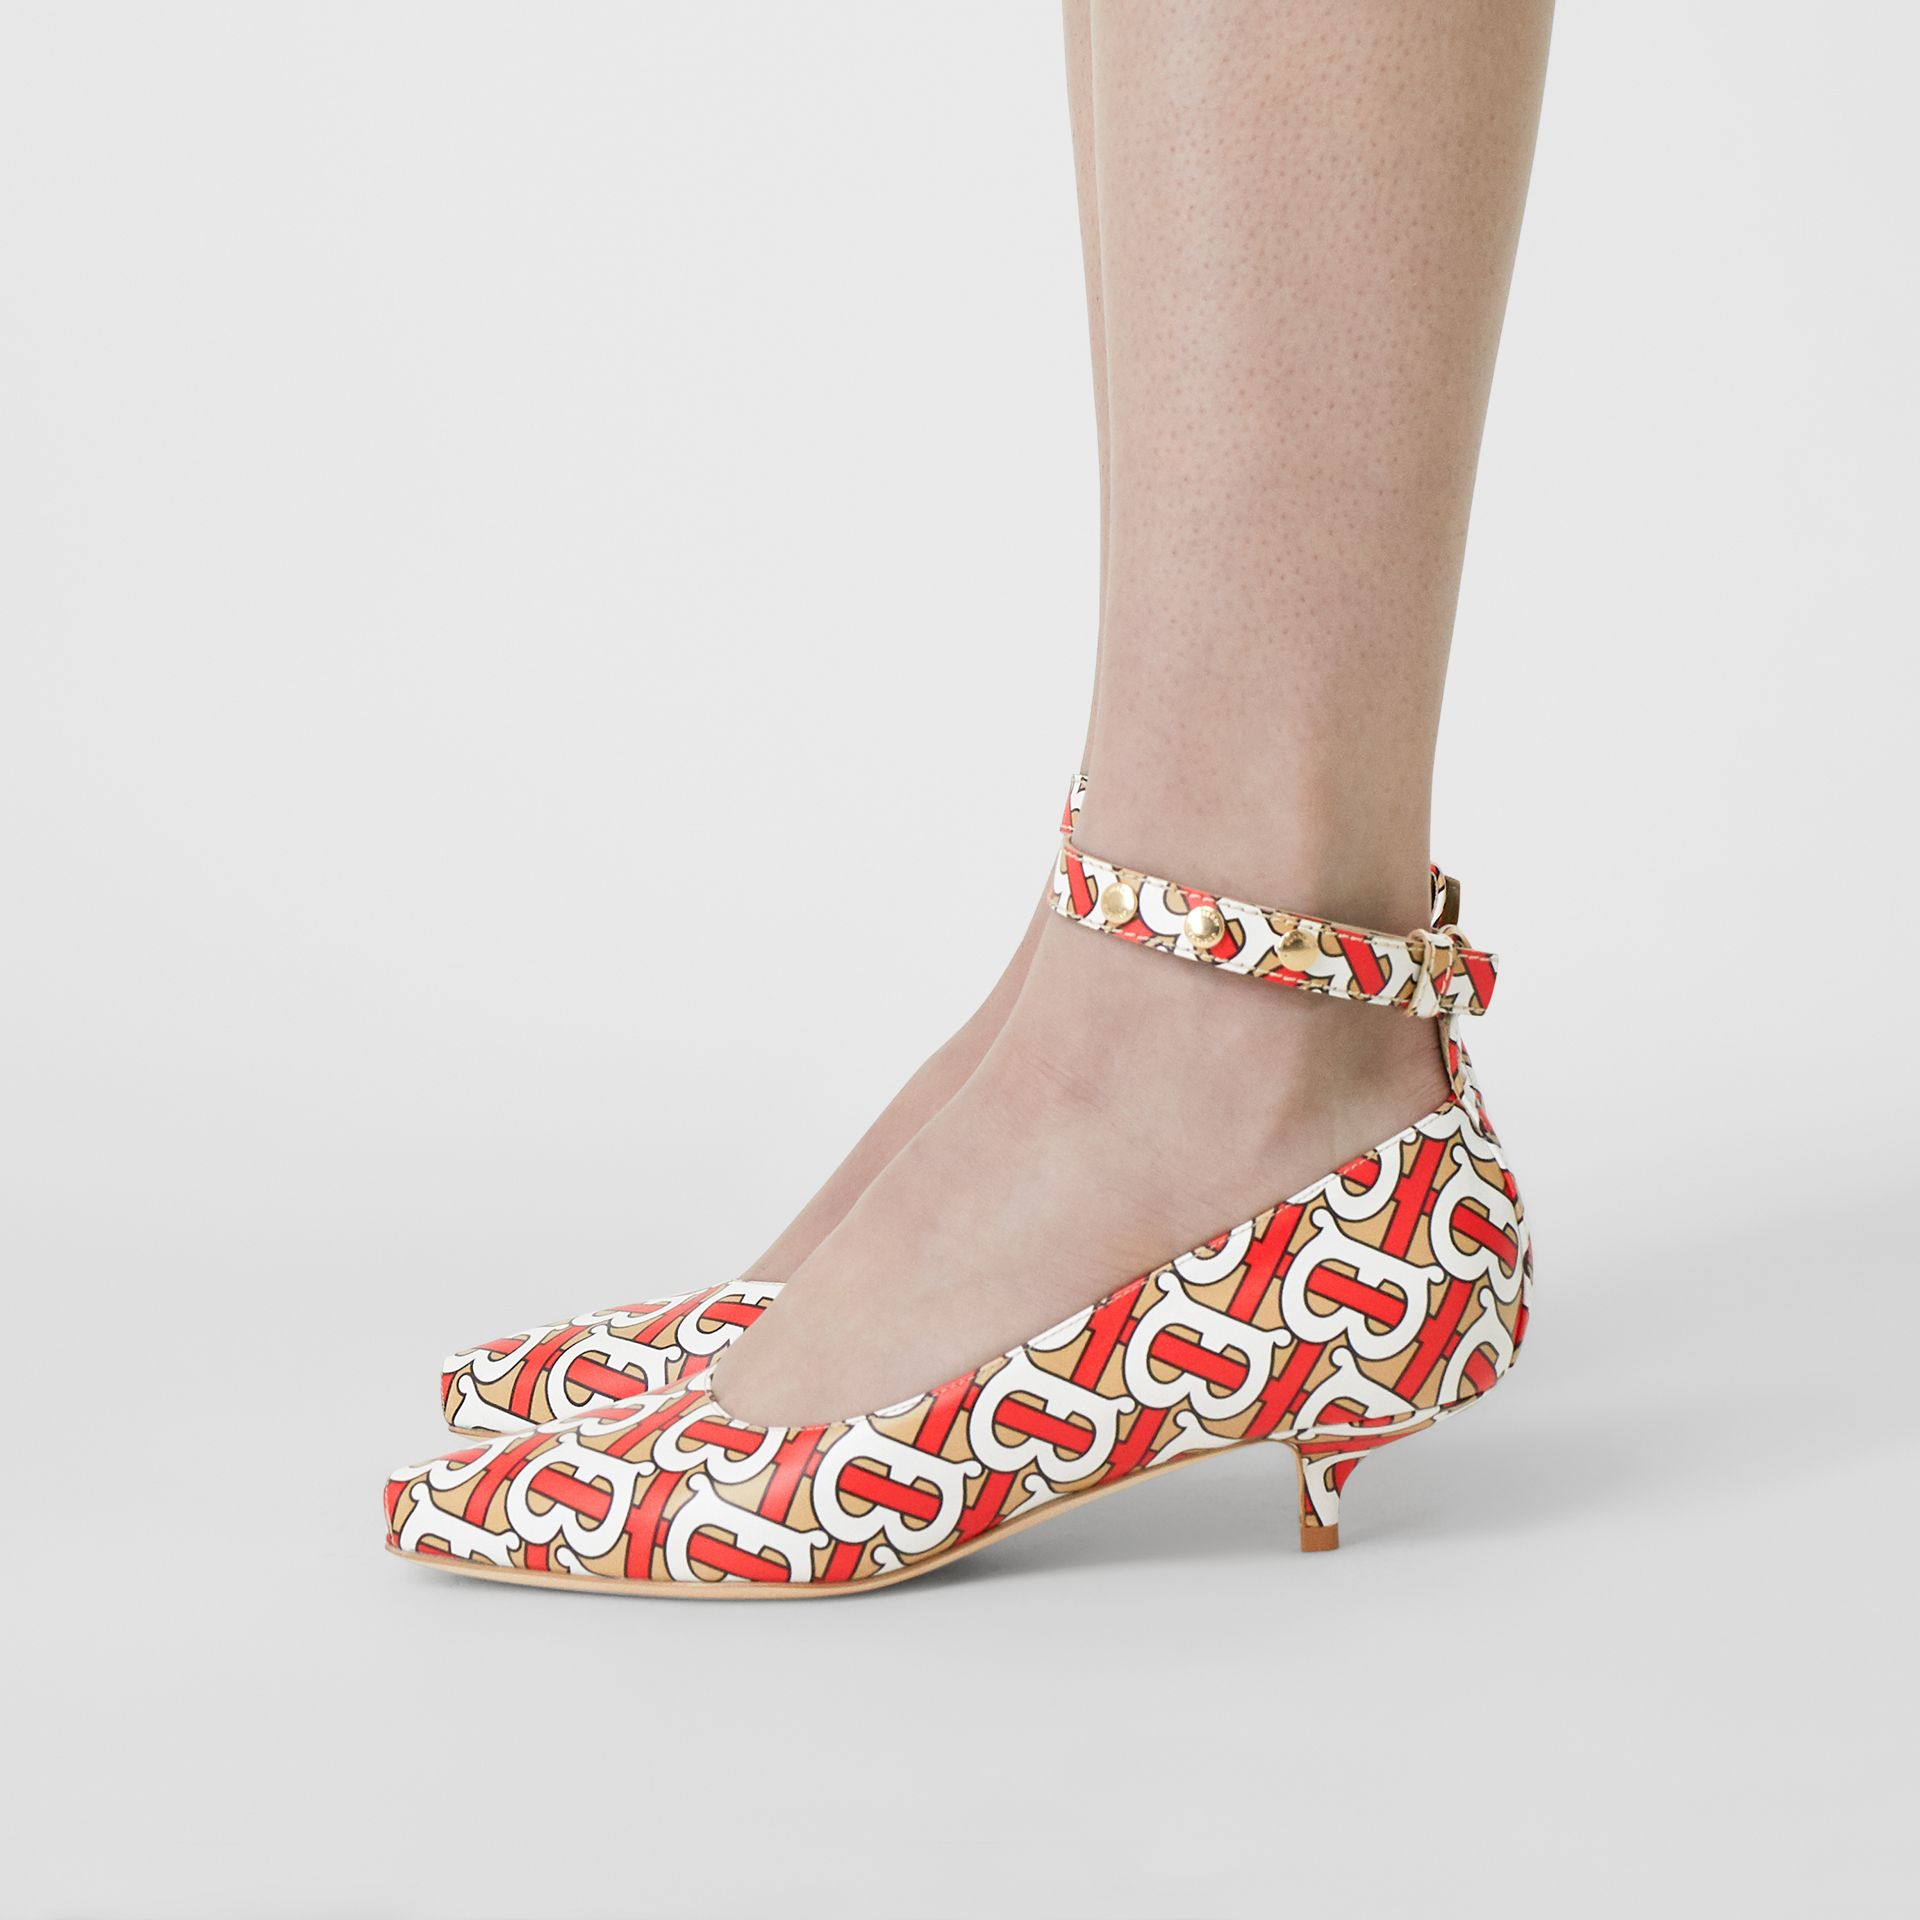 Monogram Print Leather Peep-toe Kitten-heel Pumps in Tawny - Women | Burberry Canada - gallery image 2